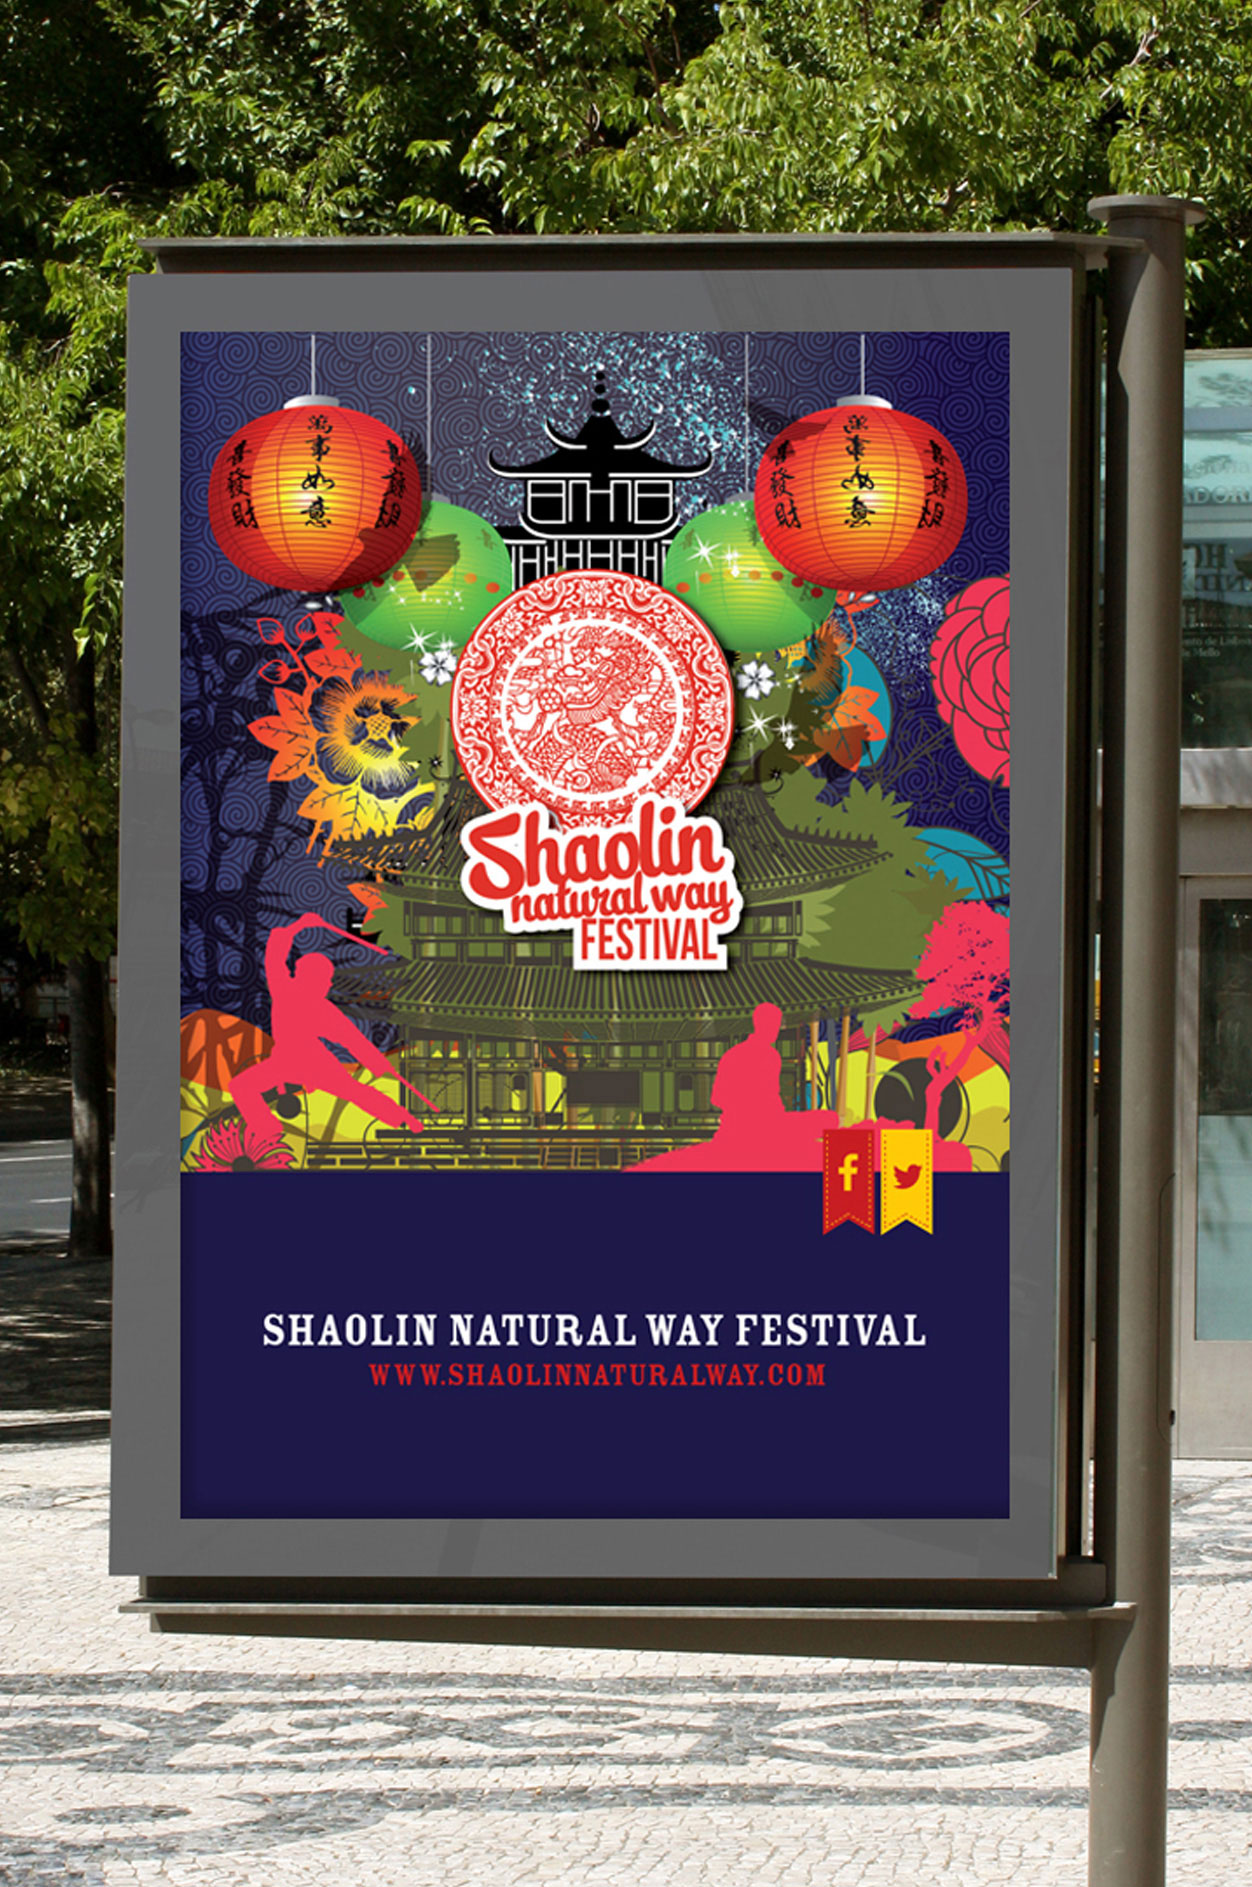 Shaolin Natural Way Festival Advertisement